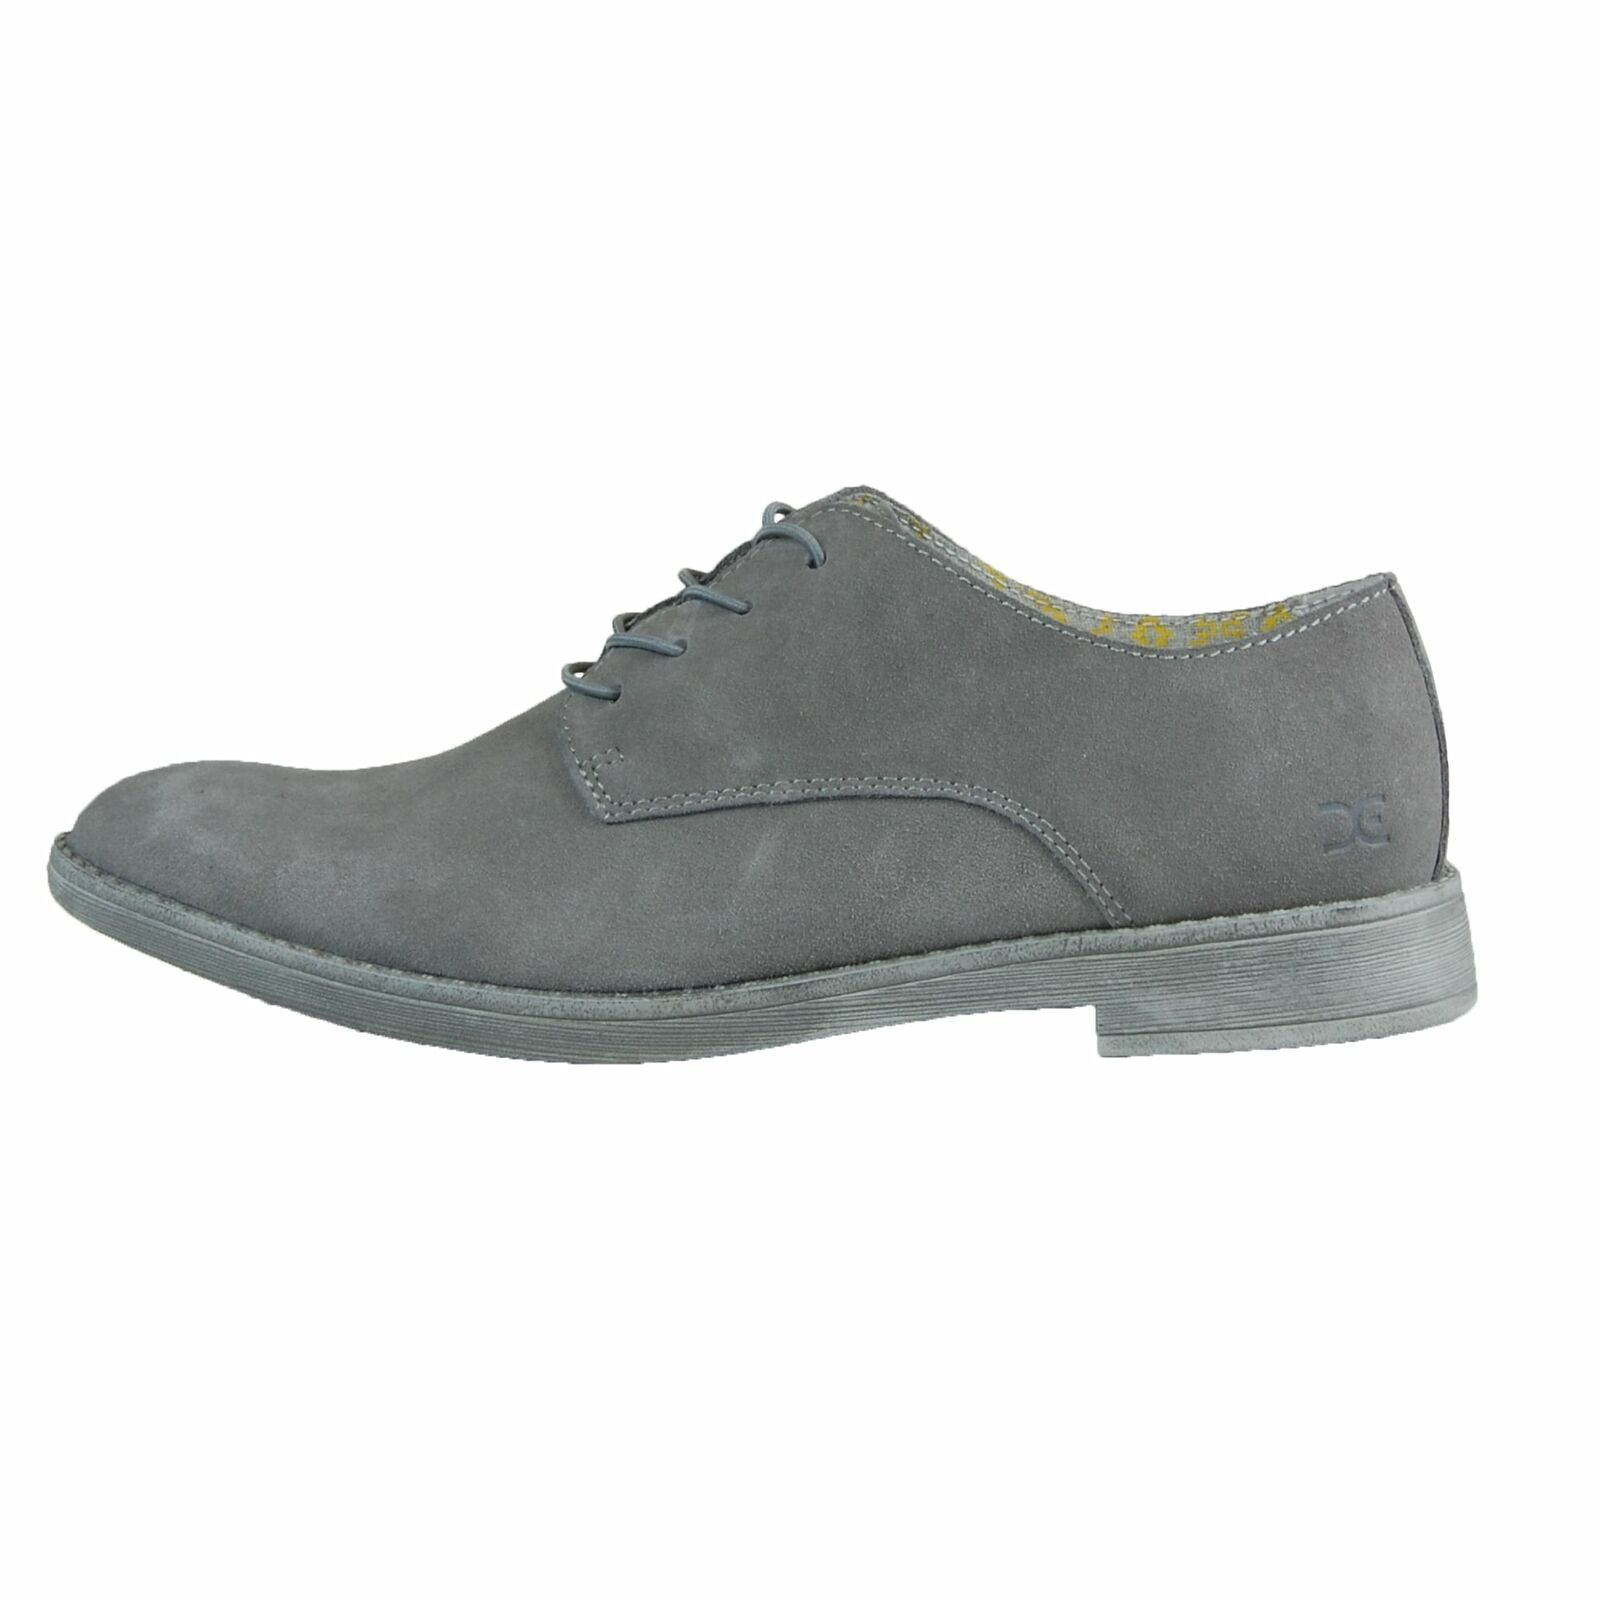 Hey Dude shoes Mens Volterra Suede Fume Derby shoes